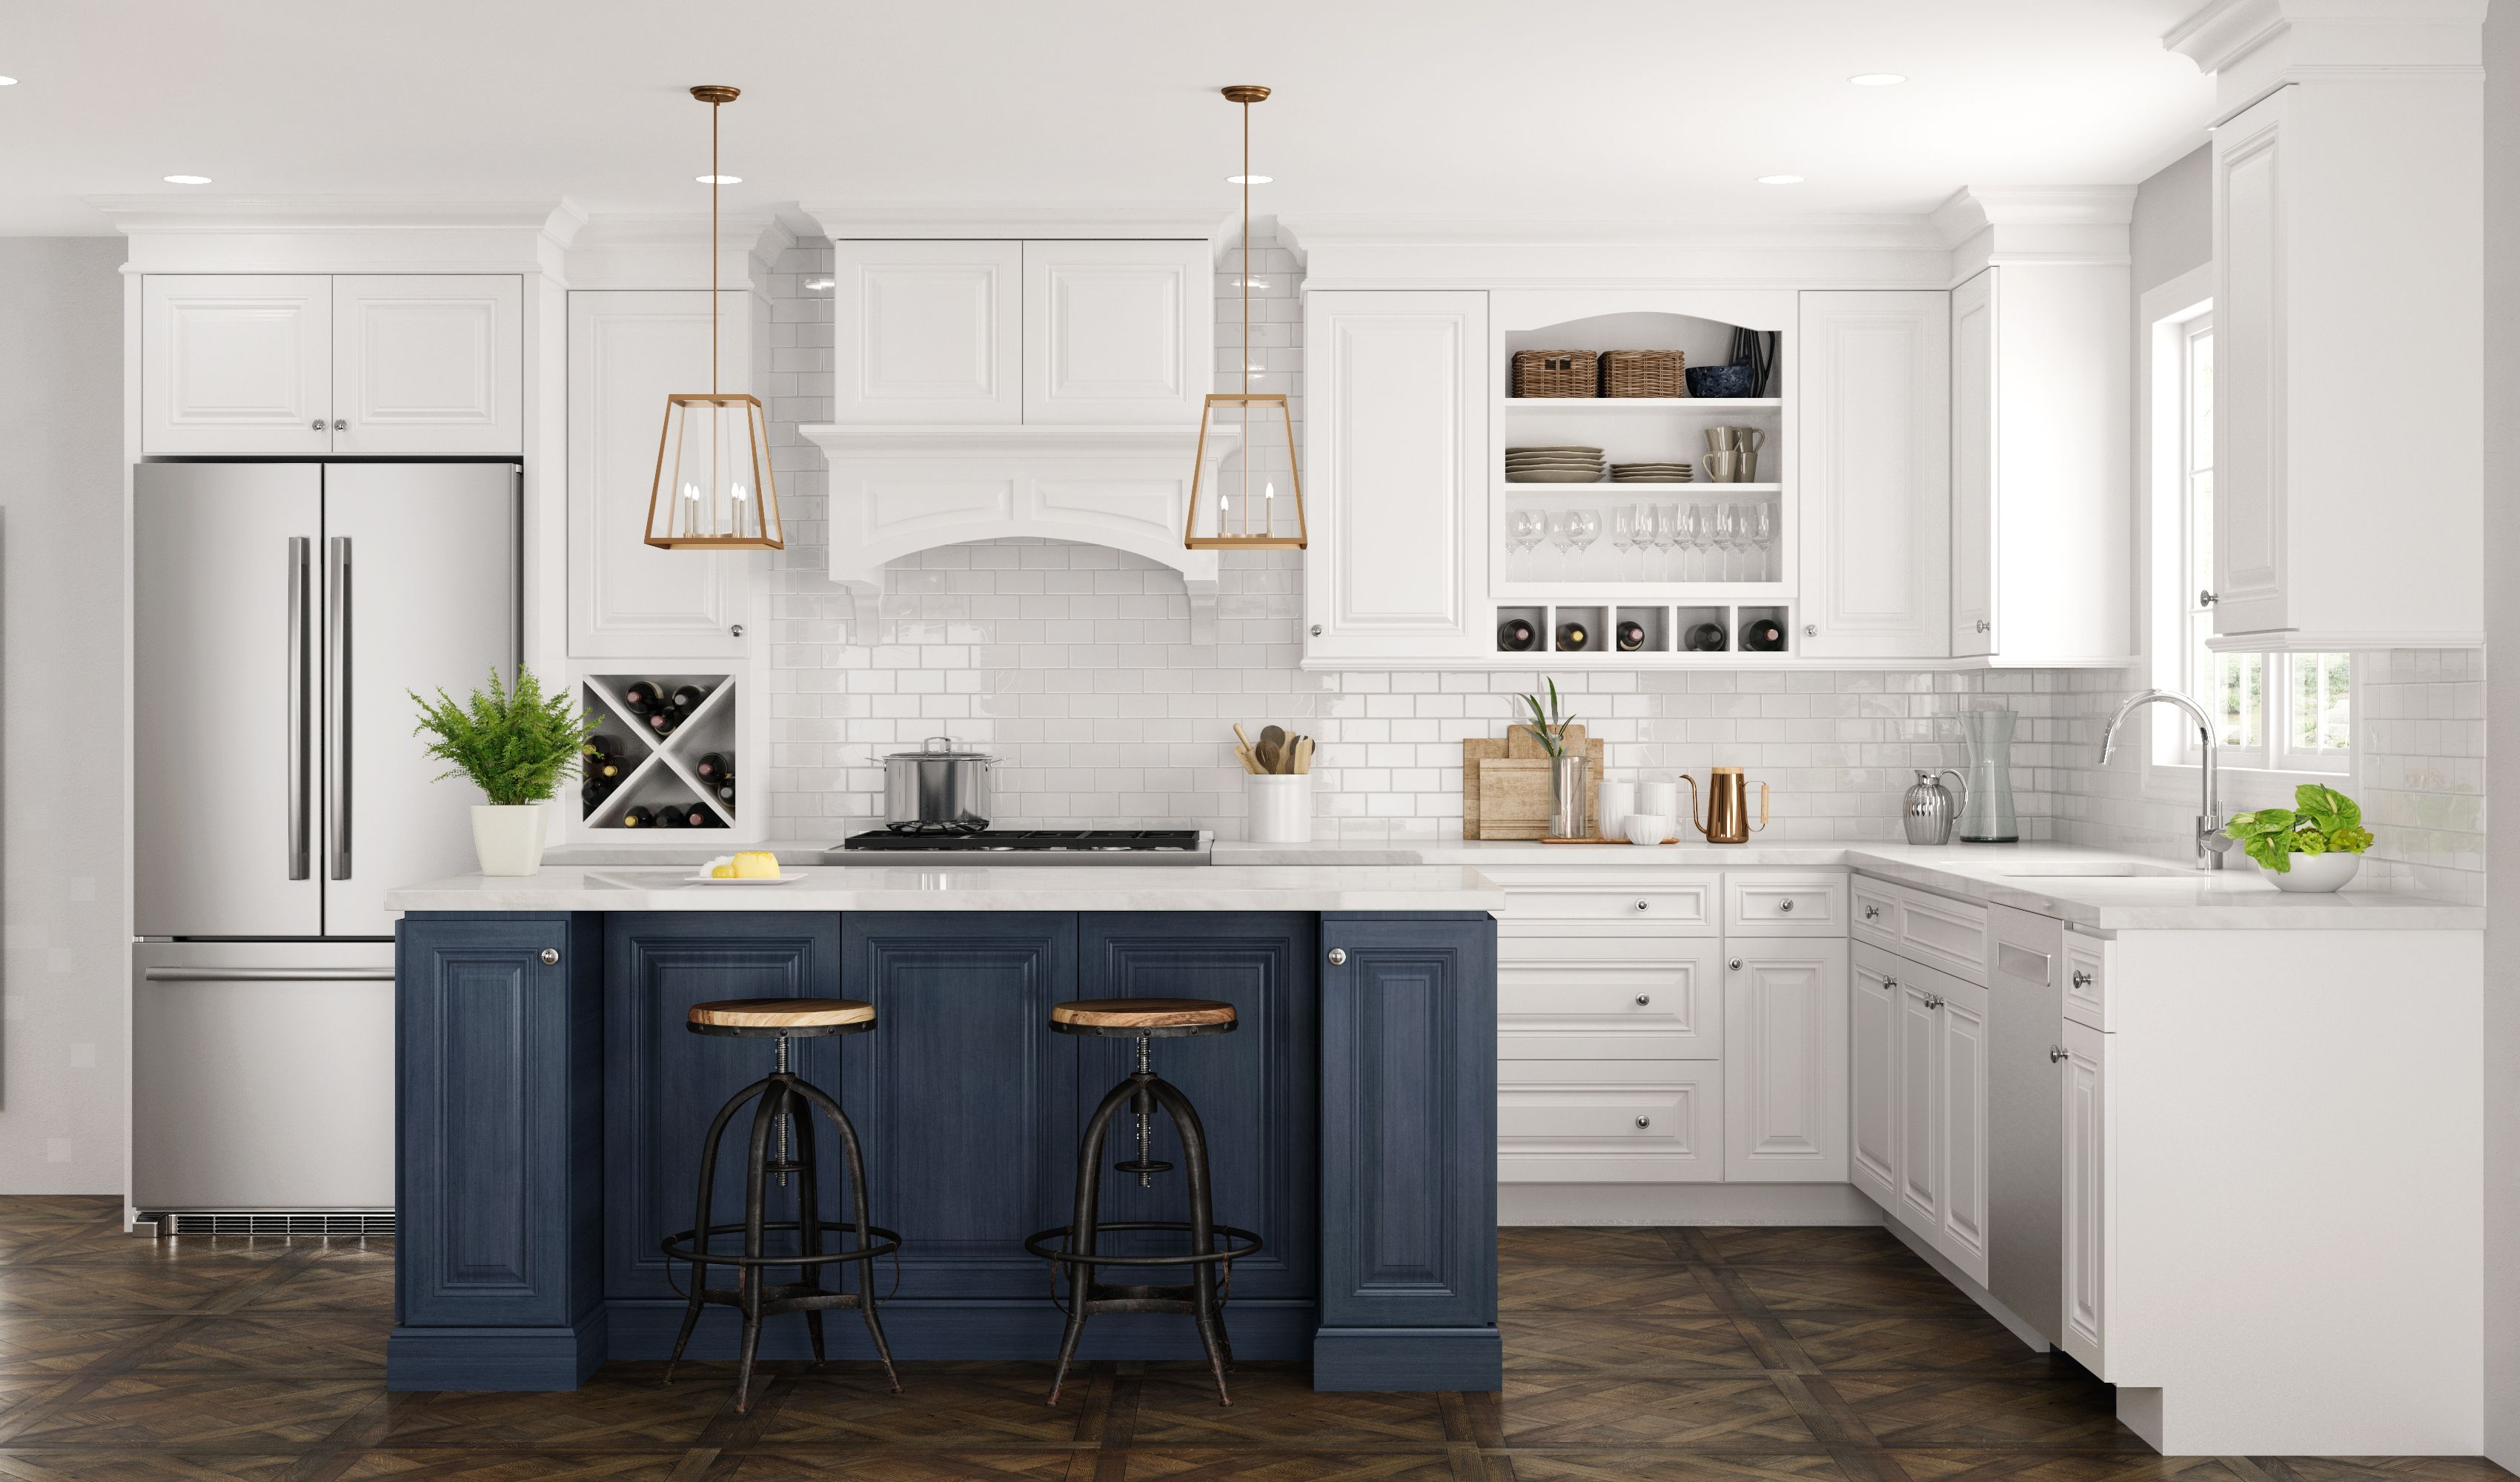 New Park Avenue Cabinet Door Style We Are Excited To Announce